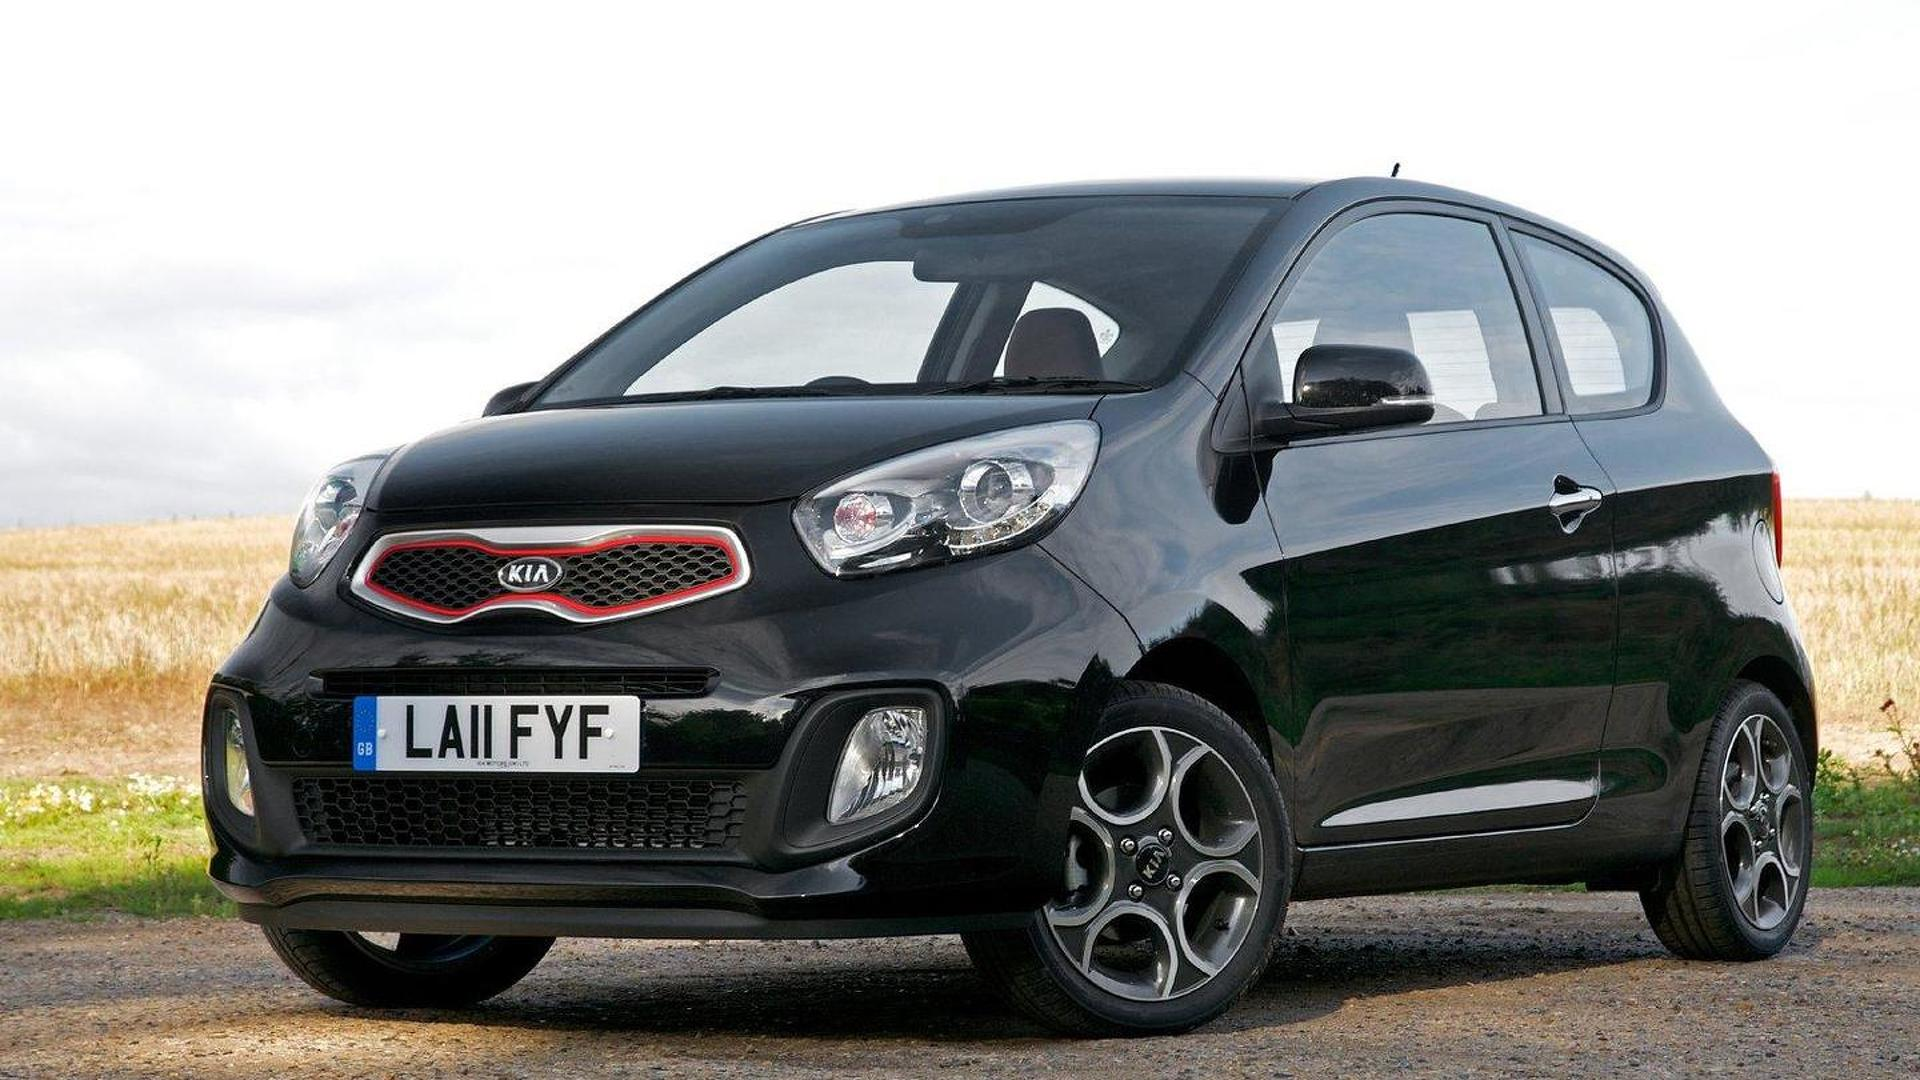 Verrassend 2013 Kia Picanto LPG to be revealed at Frankfurt Motor Show NR-43